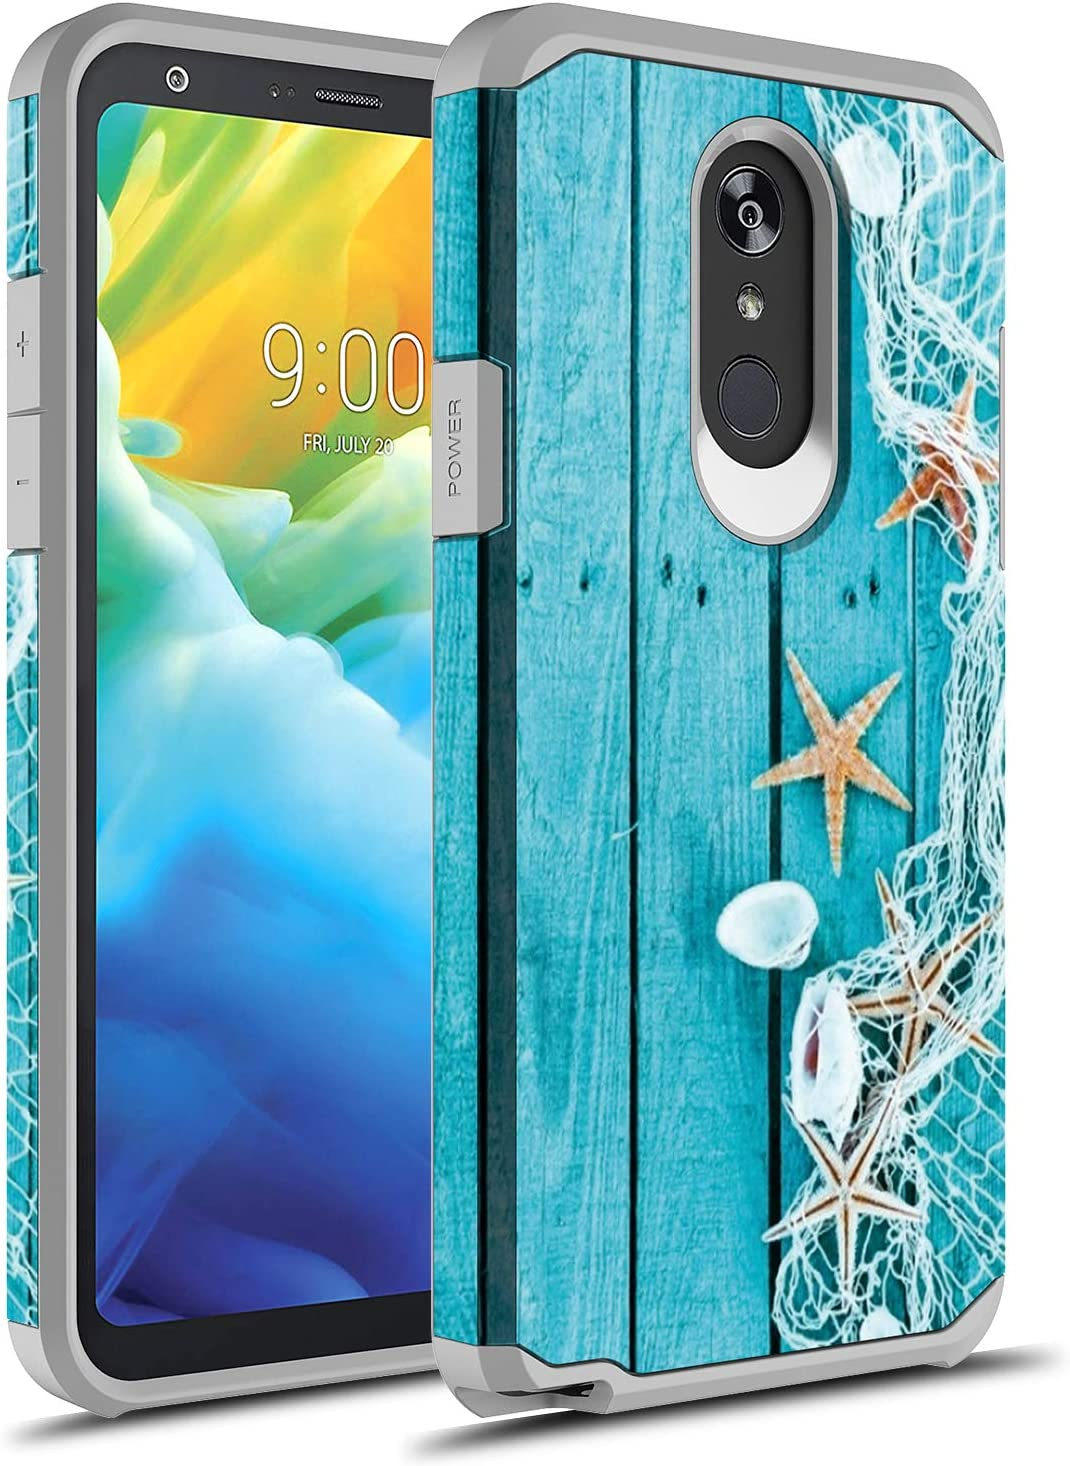 LG Stylo 5 Case, Rosebono Slim Hybrid Dual Layer Shockproof Hard Cover Graphic Fashion Cute Colorful Silicone Skin Cover Armor Case for LG Stylo 5 (Starfish)